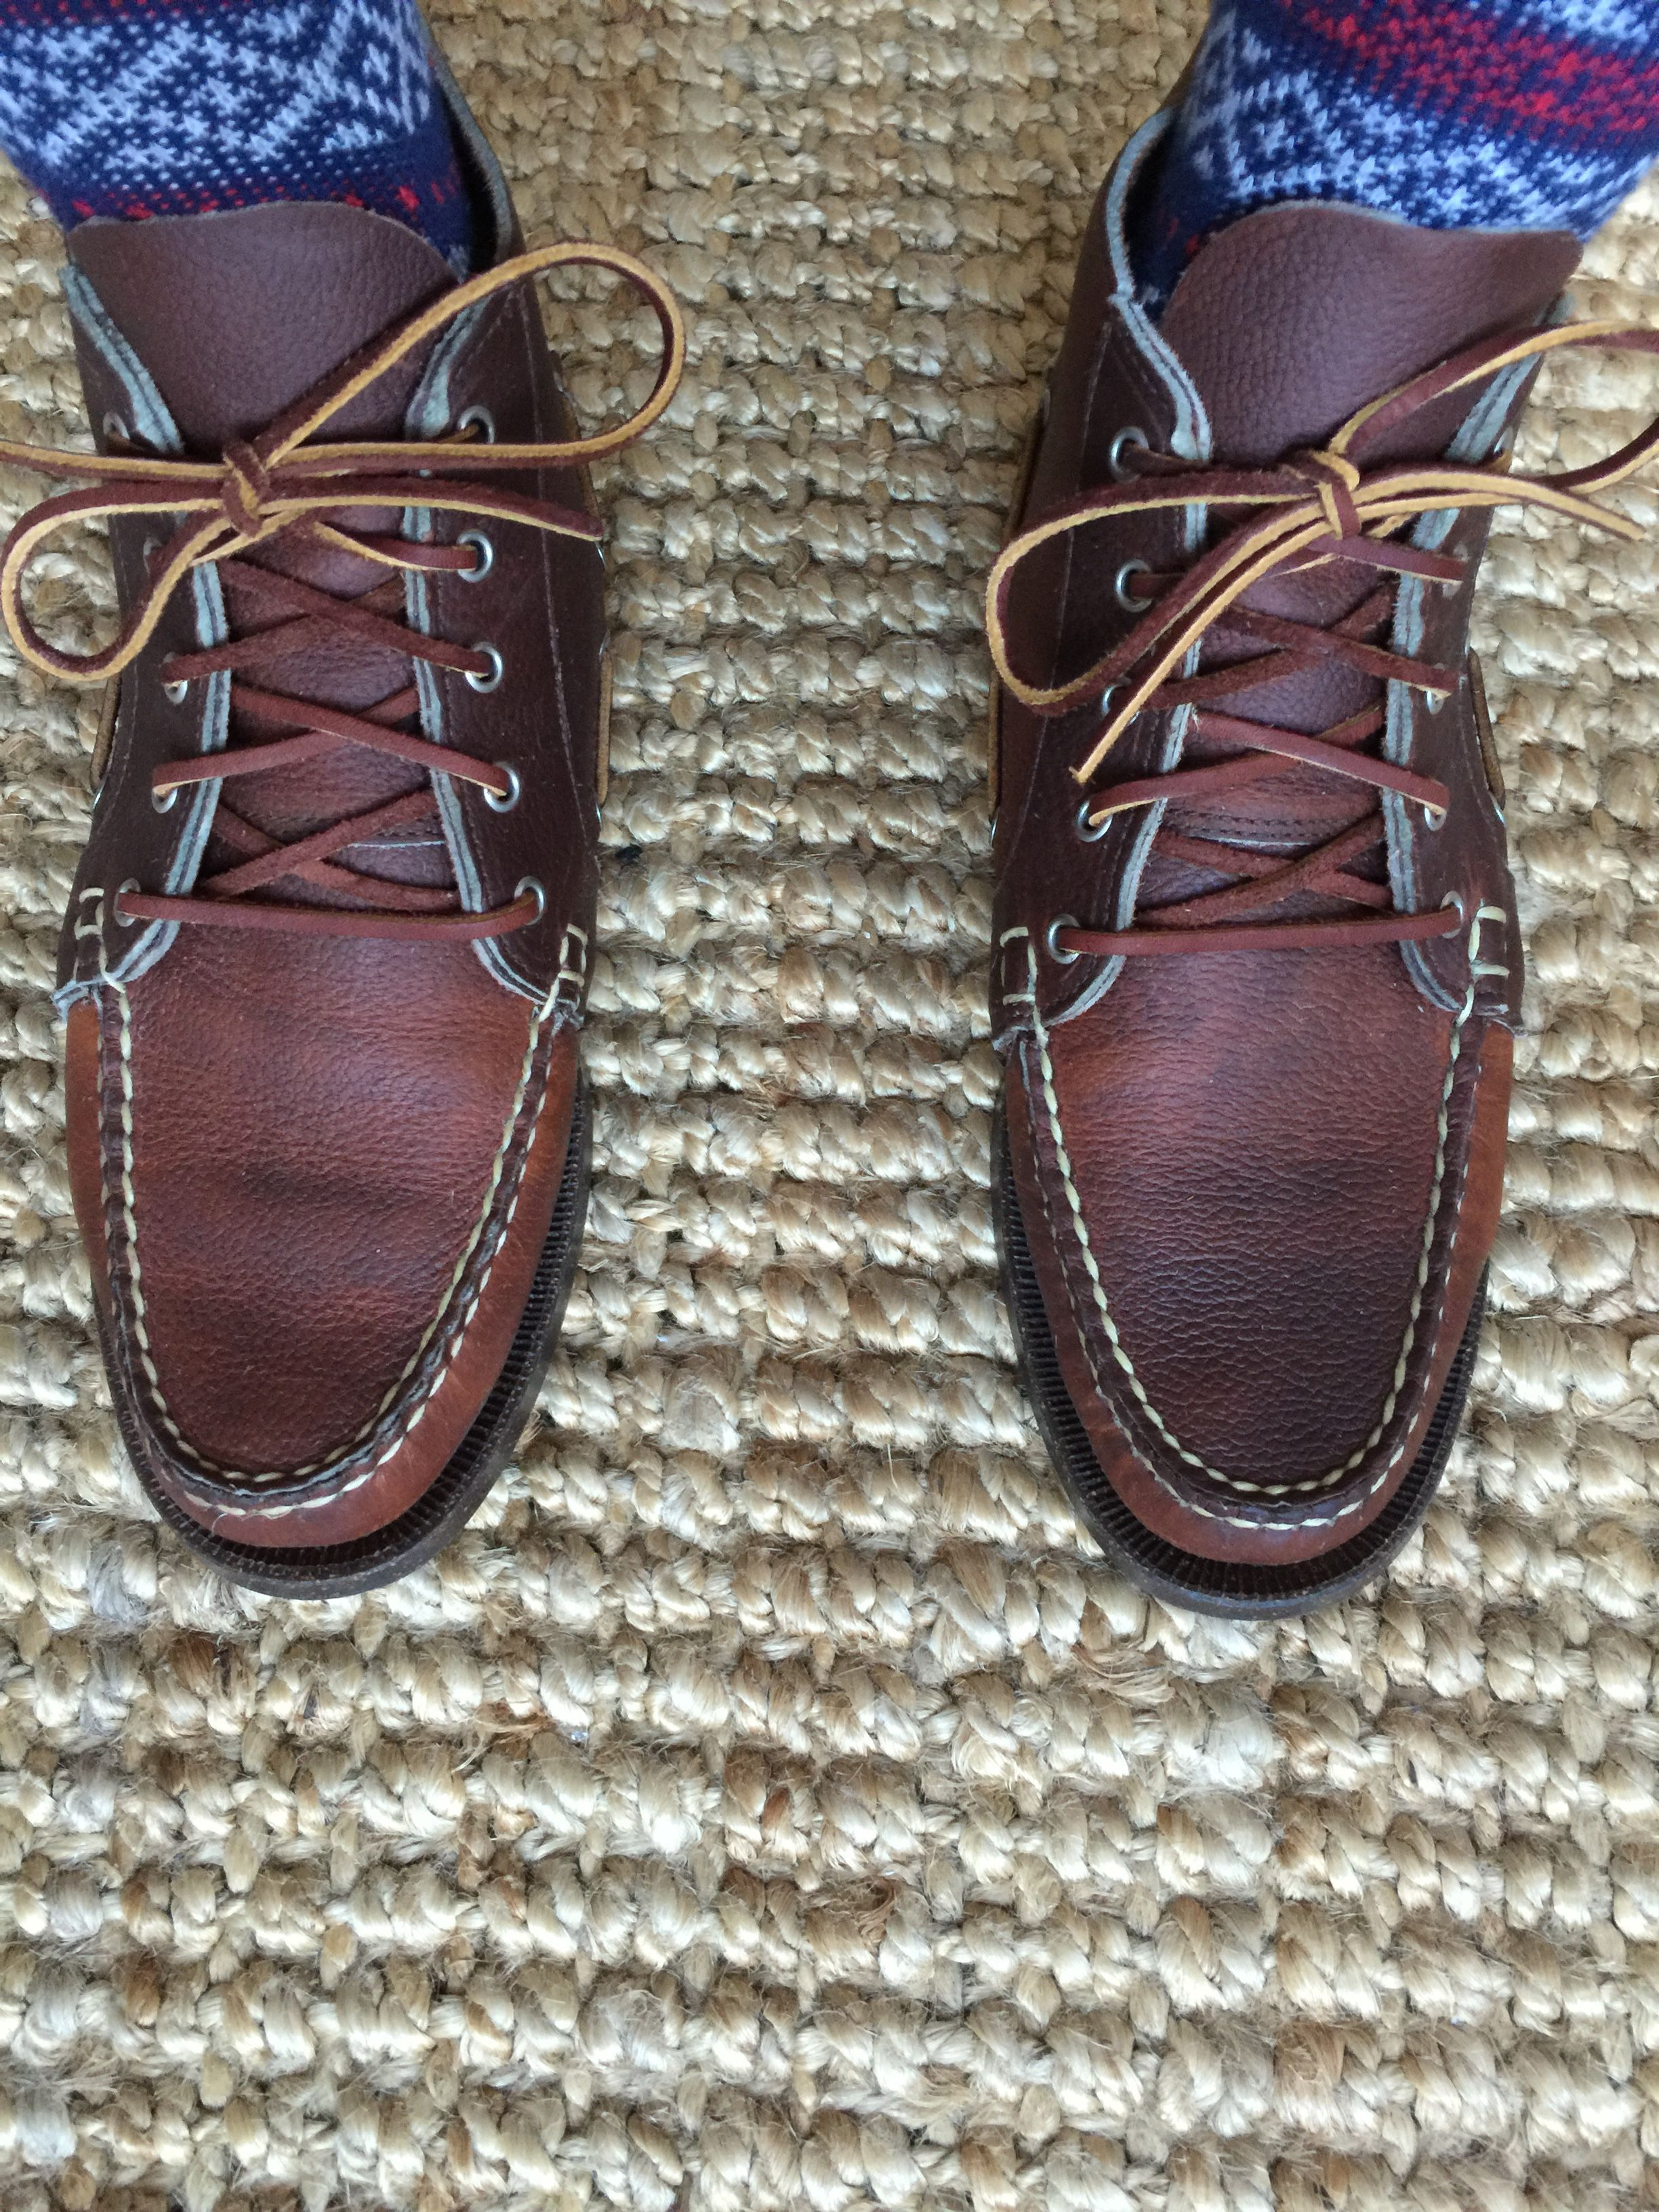 fiddlestyx's photos in Allen Edmonds Appreciation Thread 2016 - News, Pictures, Sizing, Accessories, Clothing, etc